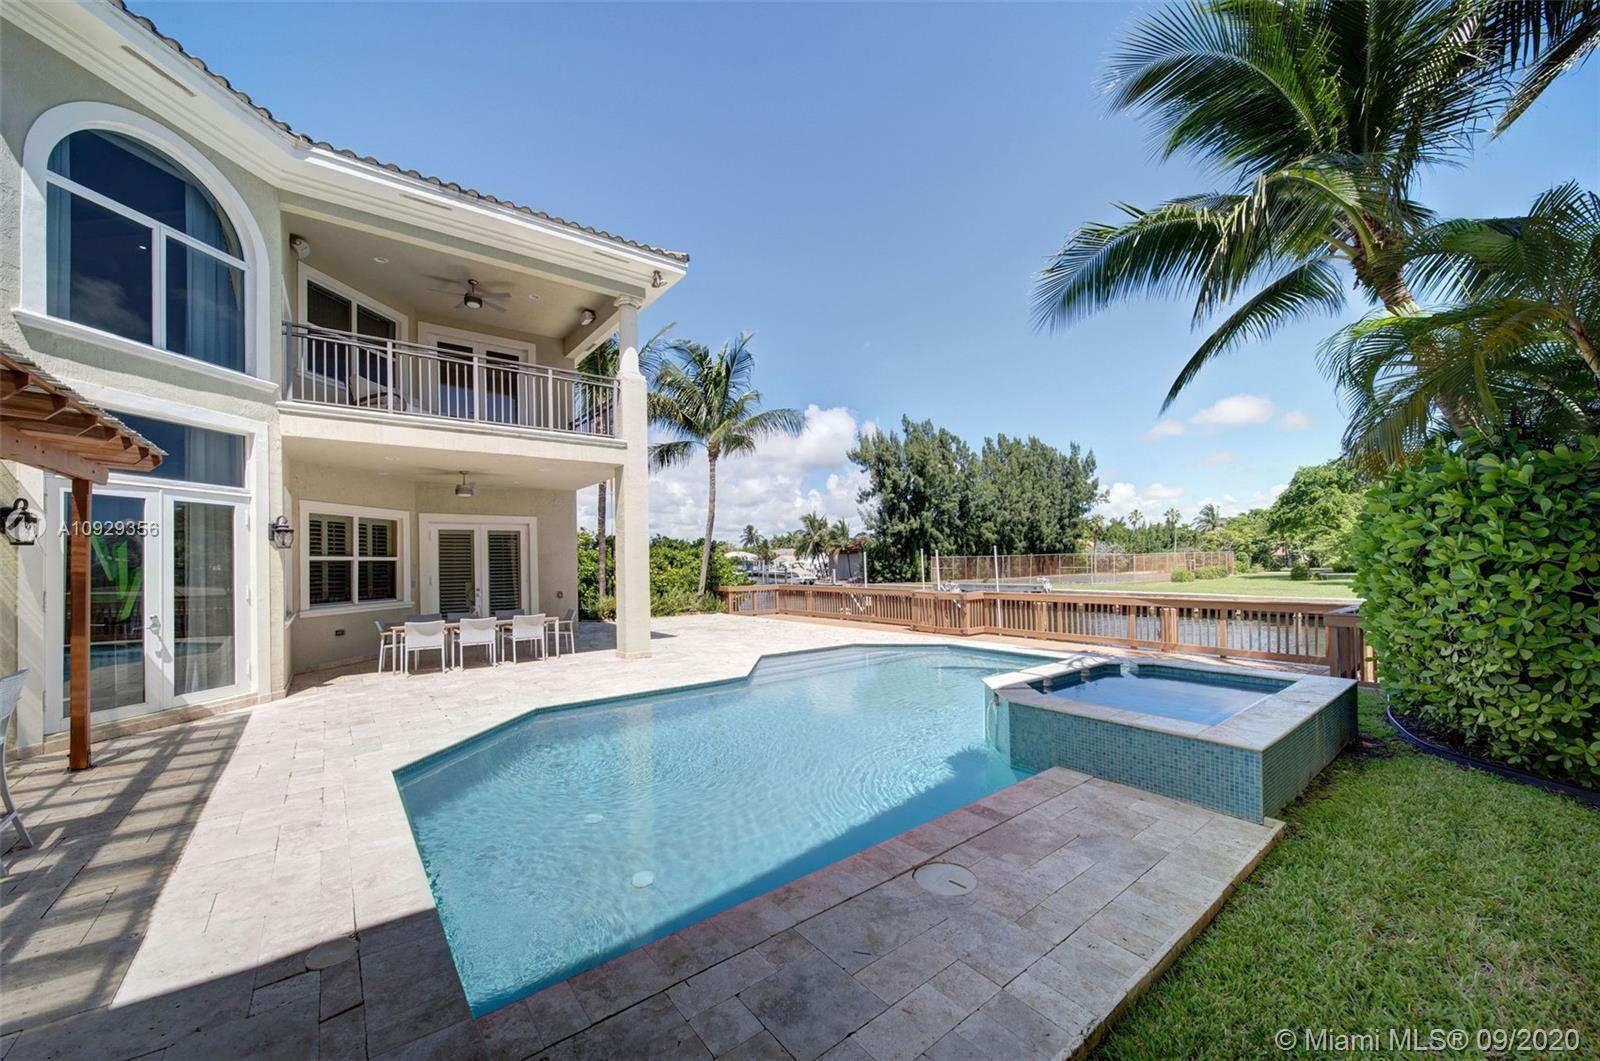 This luxury waterfront 2-story home is nestled on a quiet cul-de-sac in the prestigious guard/gated